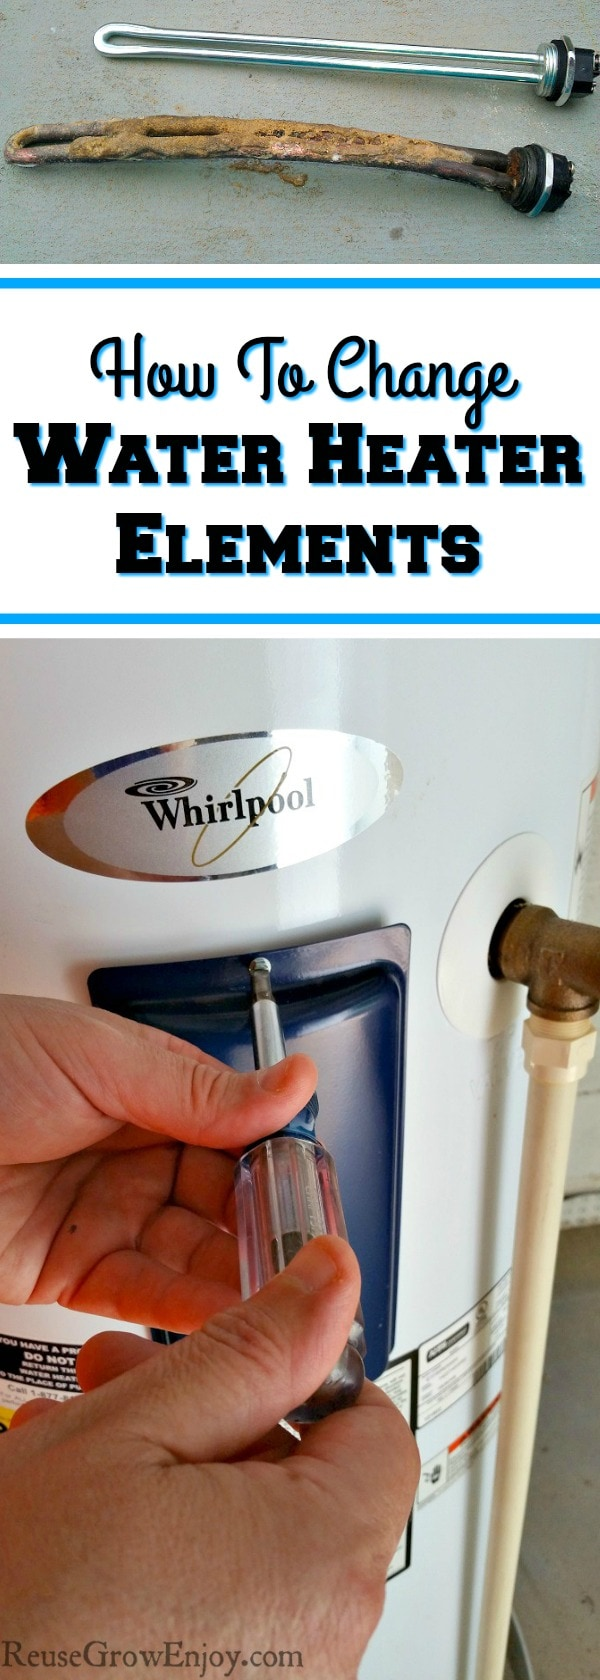 Is your hot water heater not working so well? I am going to share with you this DIY Water Heater Repair on how to change heating elements.